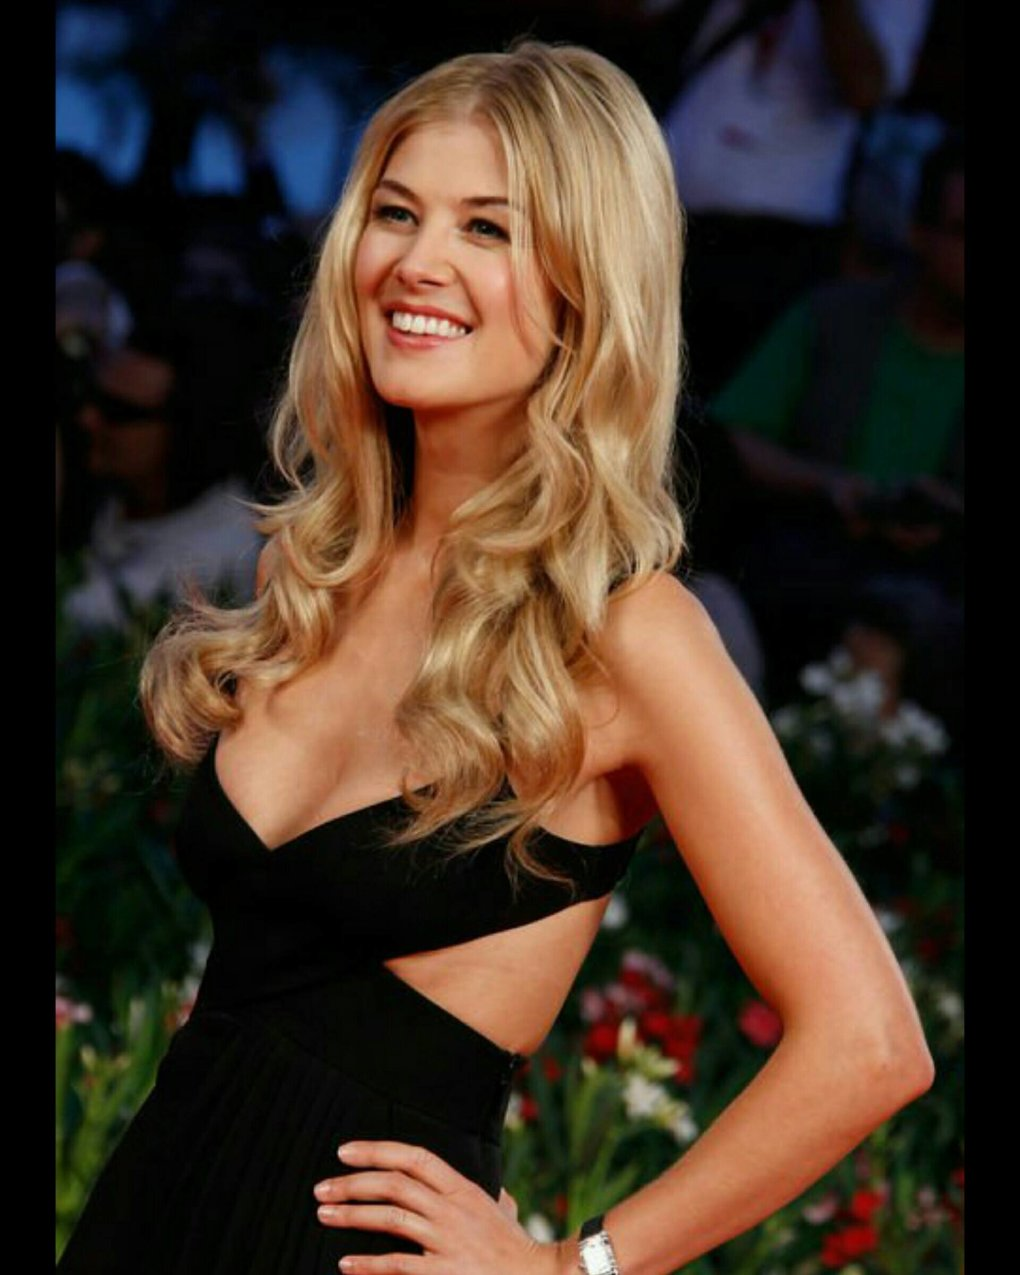 The Hottest Rosamund Pike Photos Around The Net - Barnorama